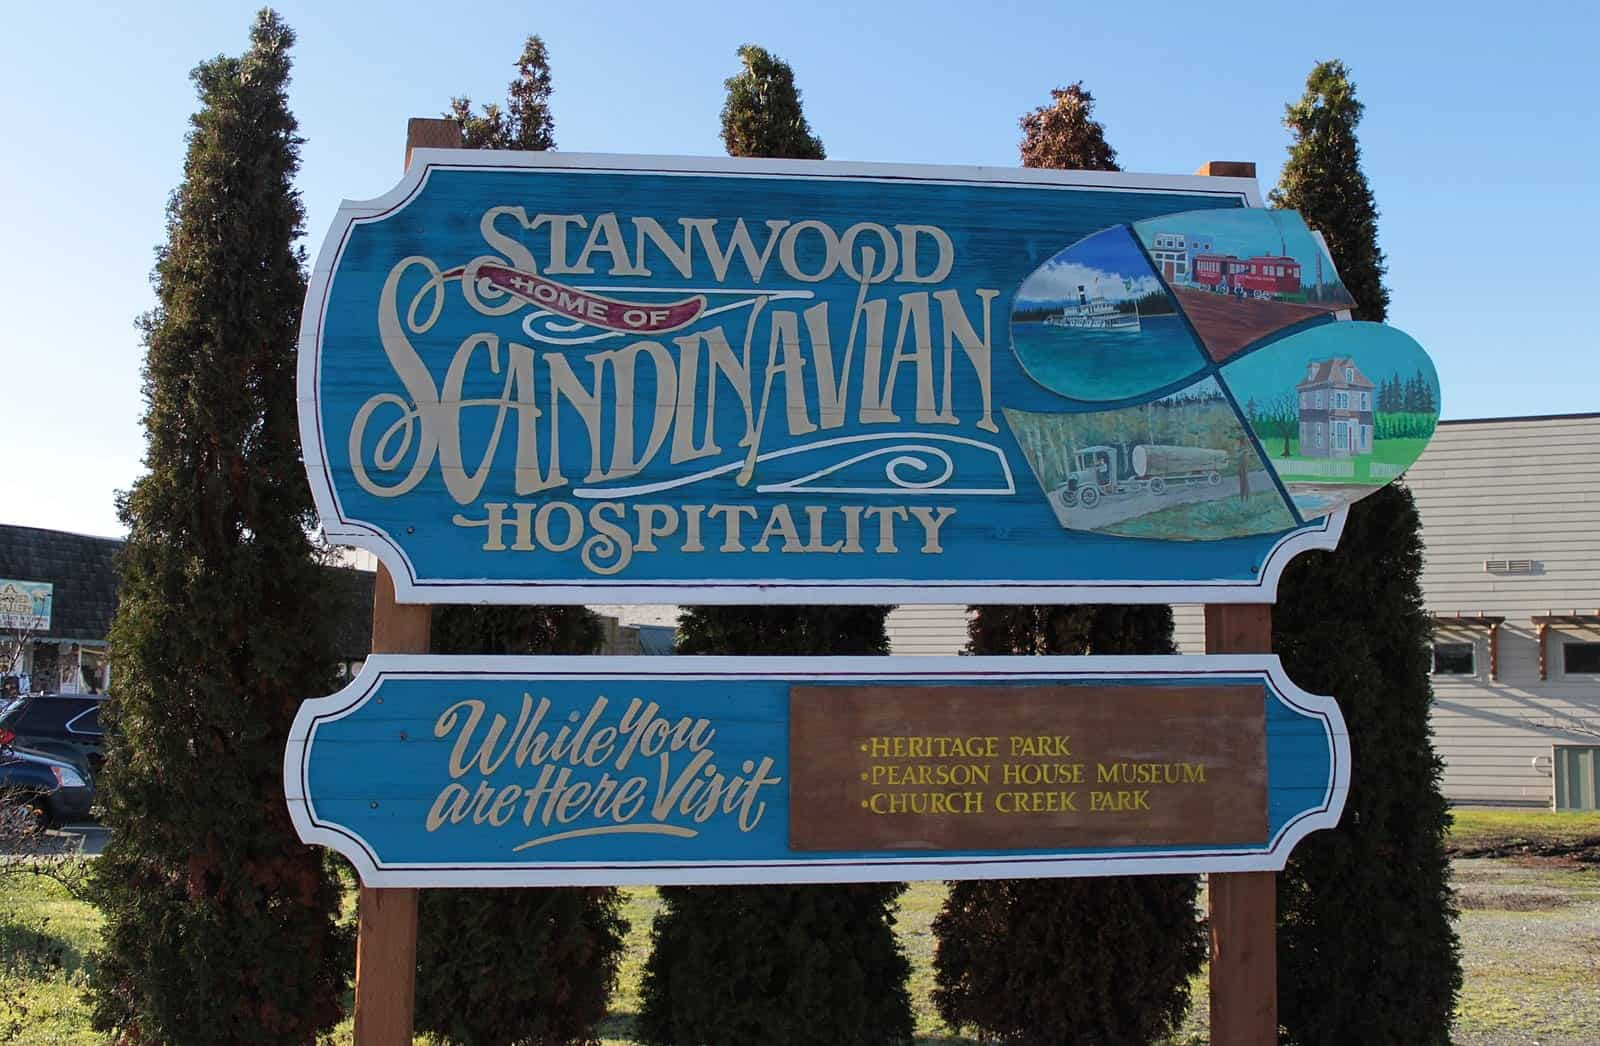 Welcome marque for Stanwood Washington